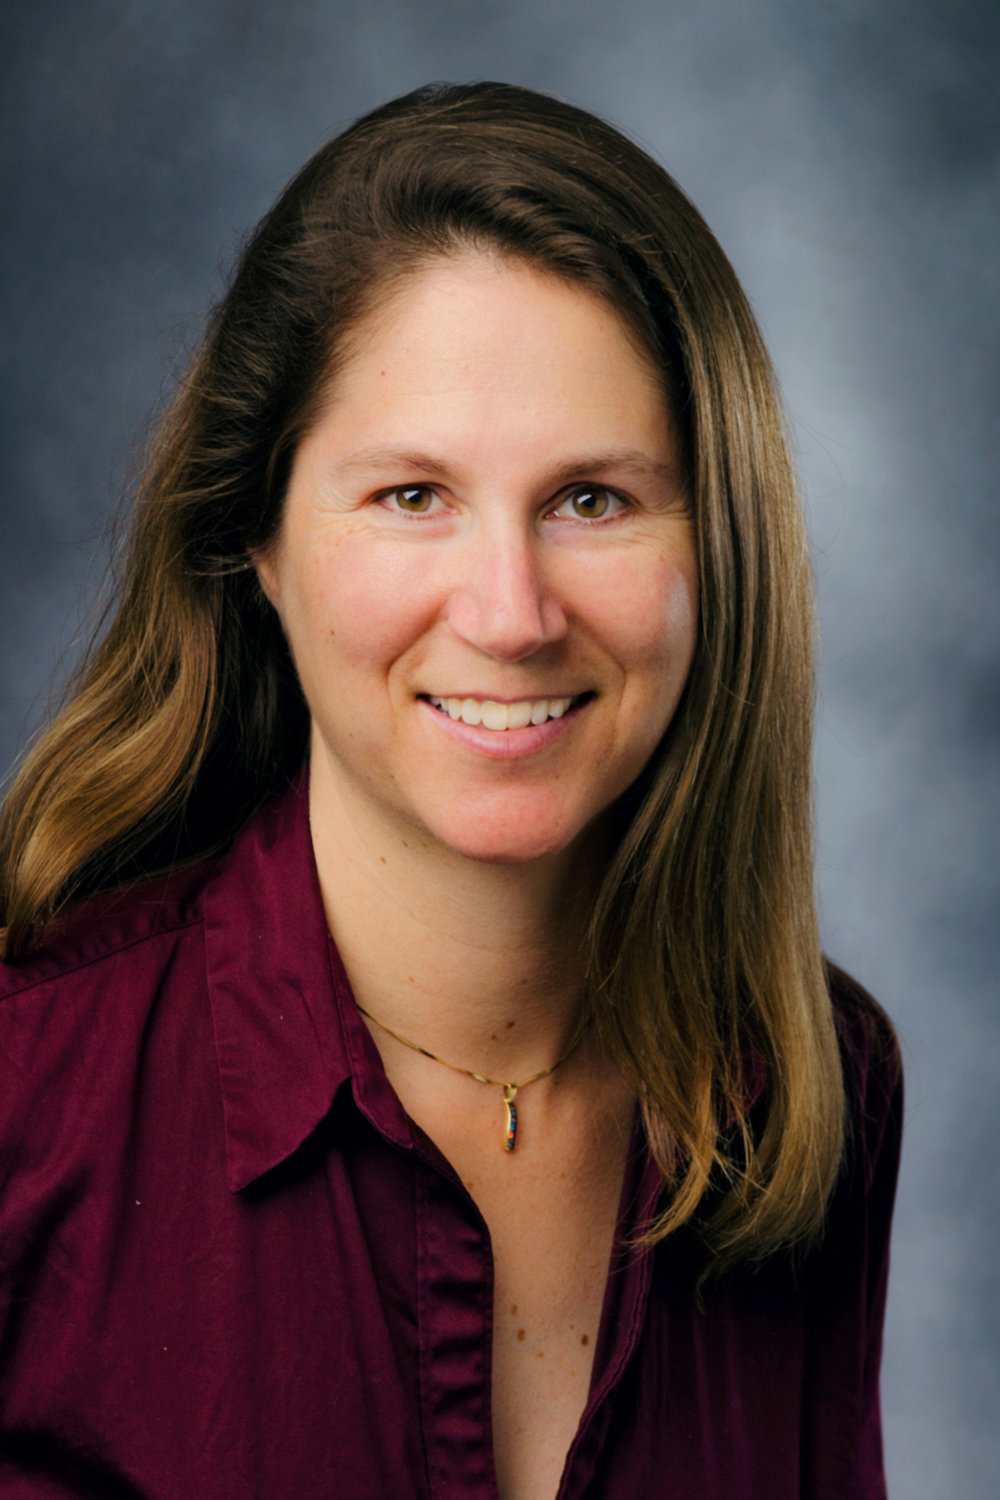 - Native Marinite Dana Armanino is a Senior Planner on the County of Marin's Sustainability Team. She received her undergraduate degree in Environment, Economics and Politics and a Master's degree from the Bren School of Environmental Science and Management at UCSB. She currently coordinates the County's climate and energy programs.